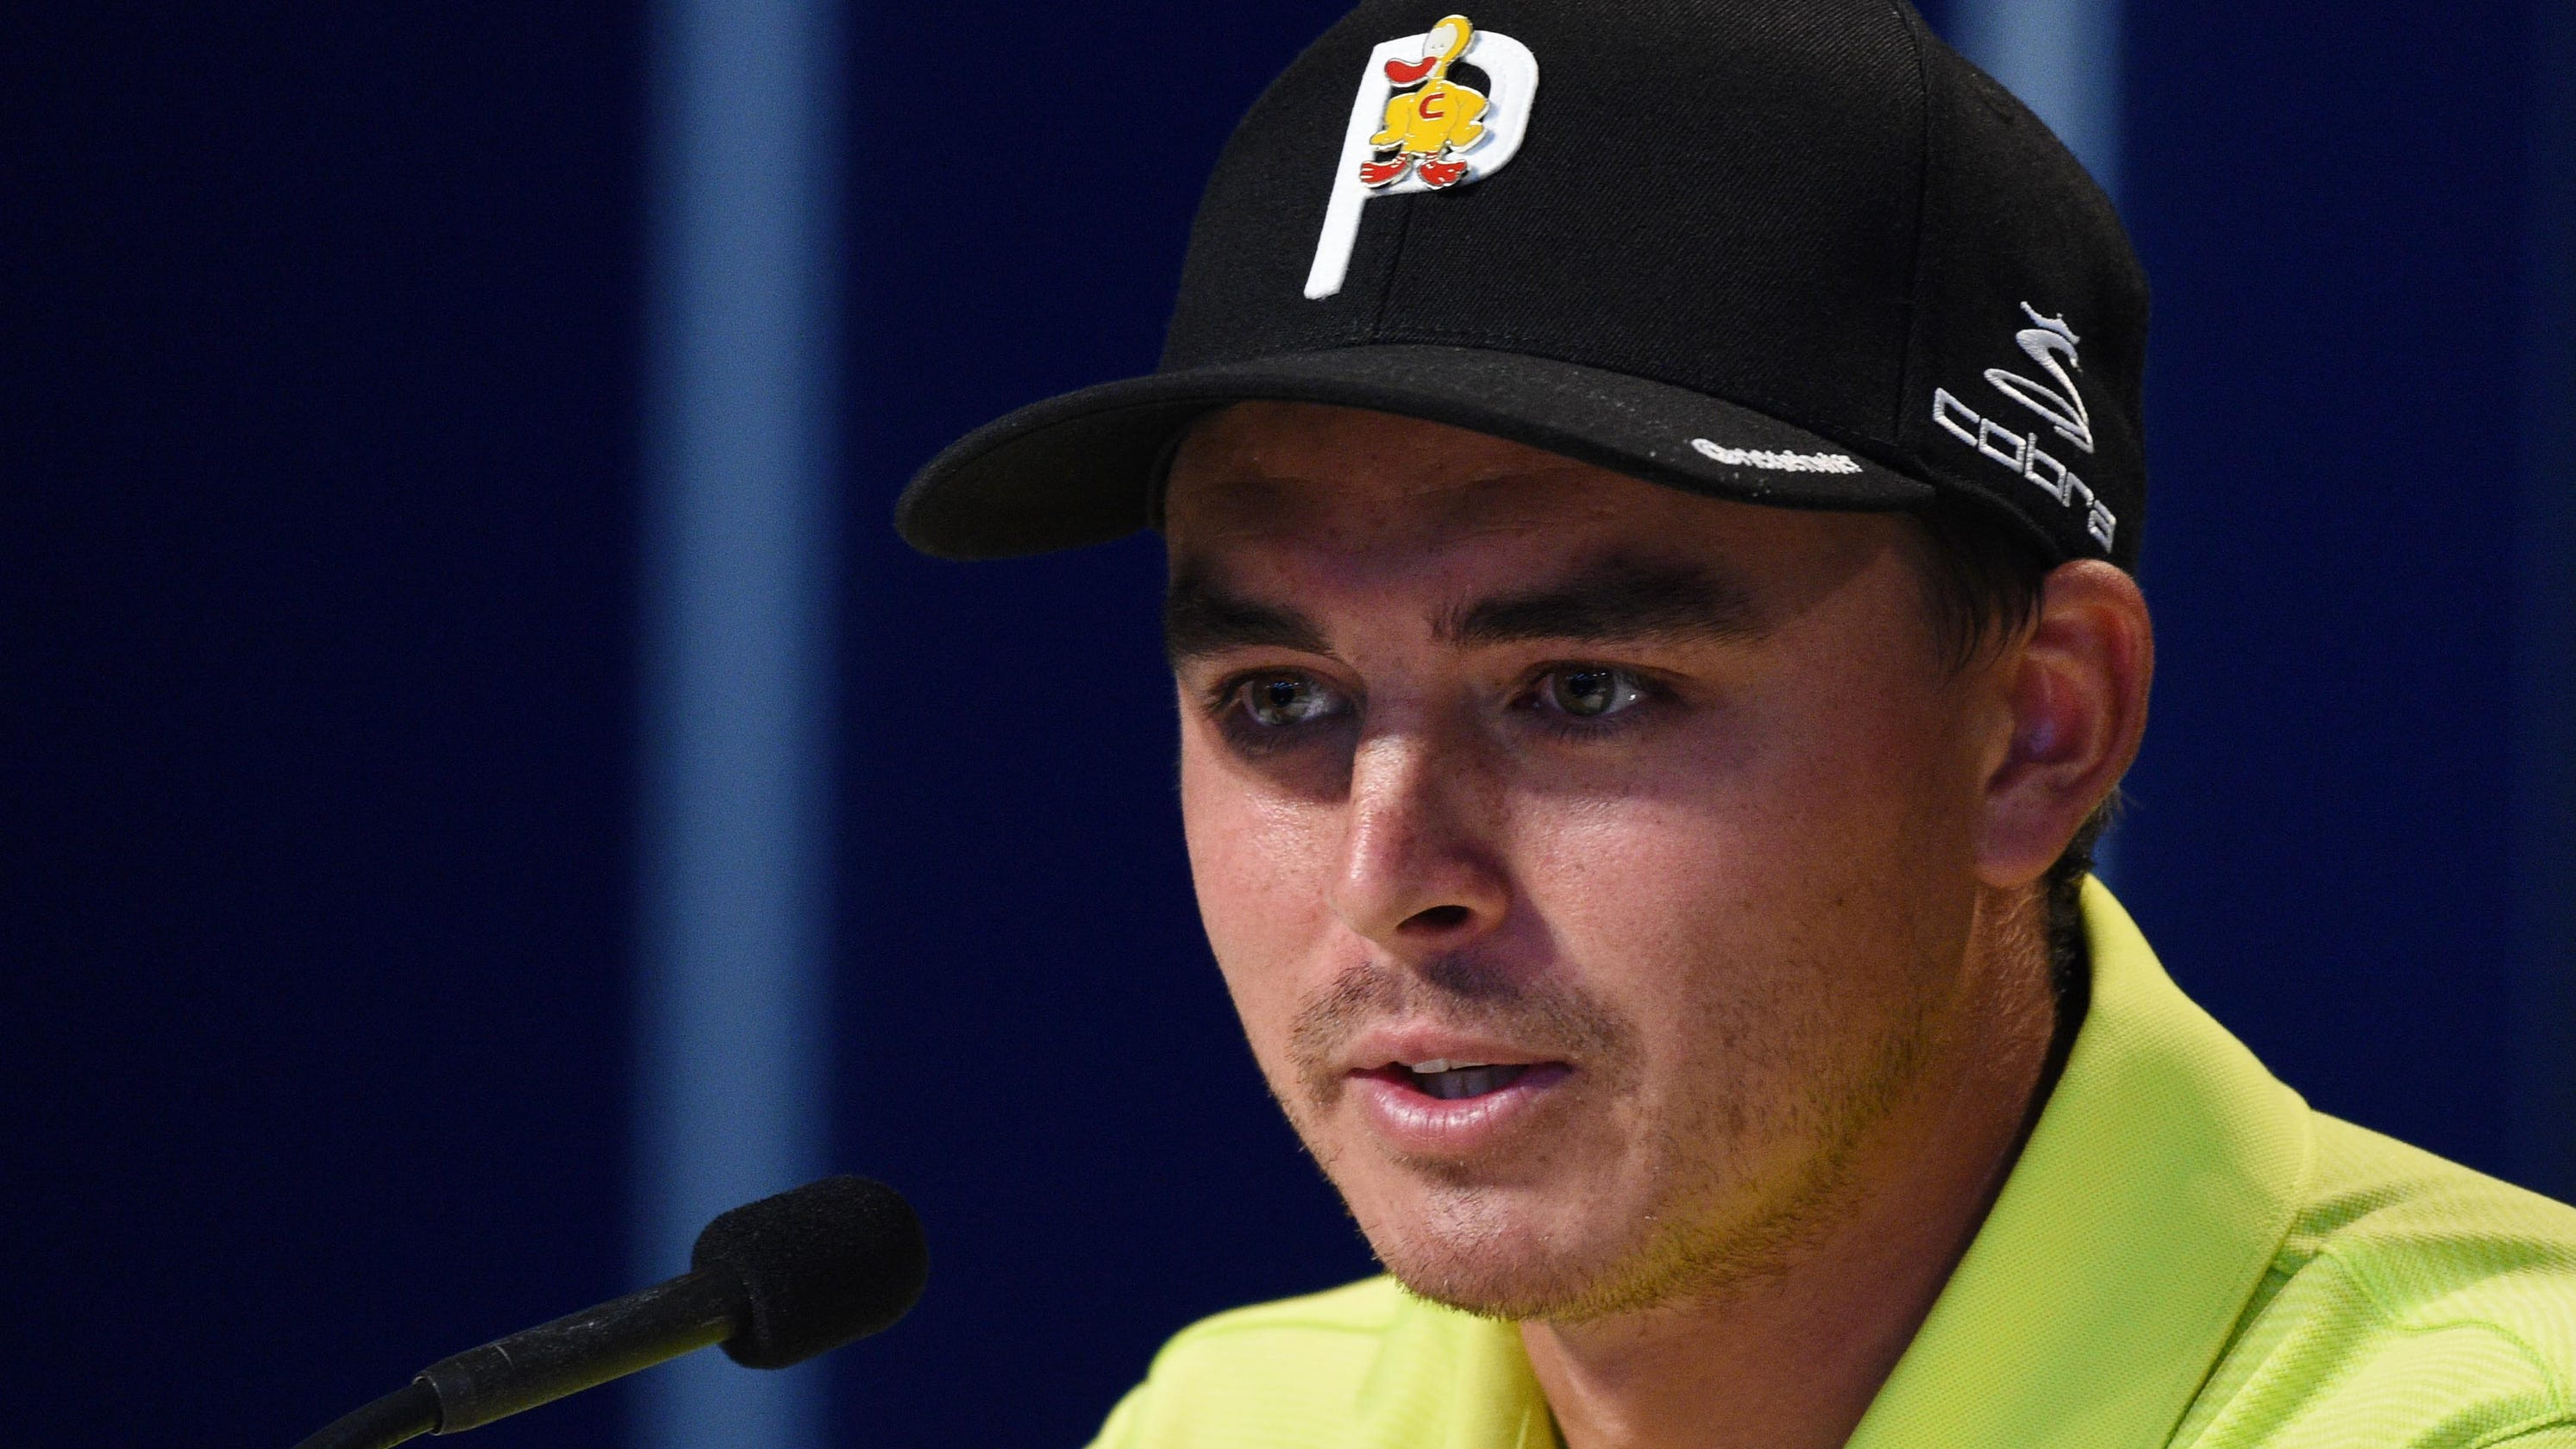 PGA Championship  Rickie Fowler pays tribute to golfer Jarrod Lyle 0bf9e6a53a69